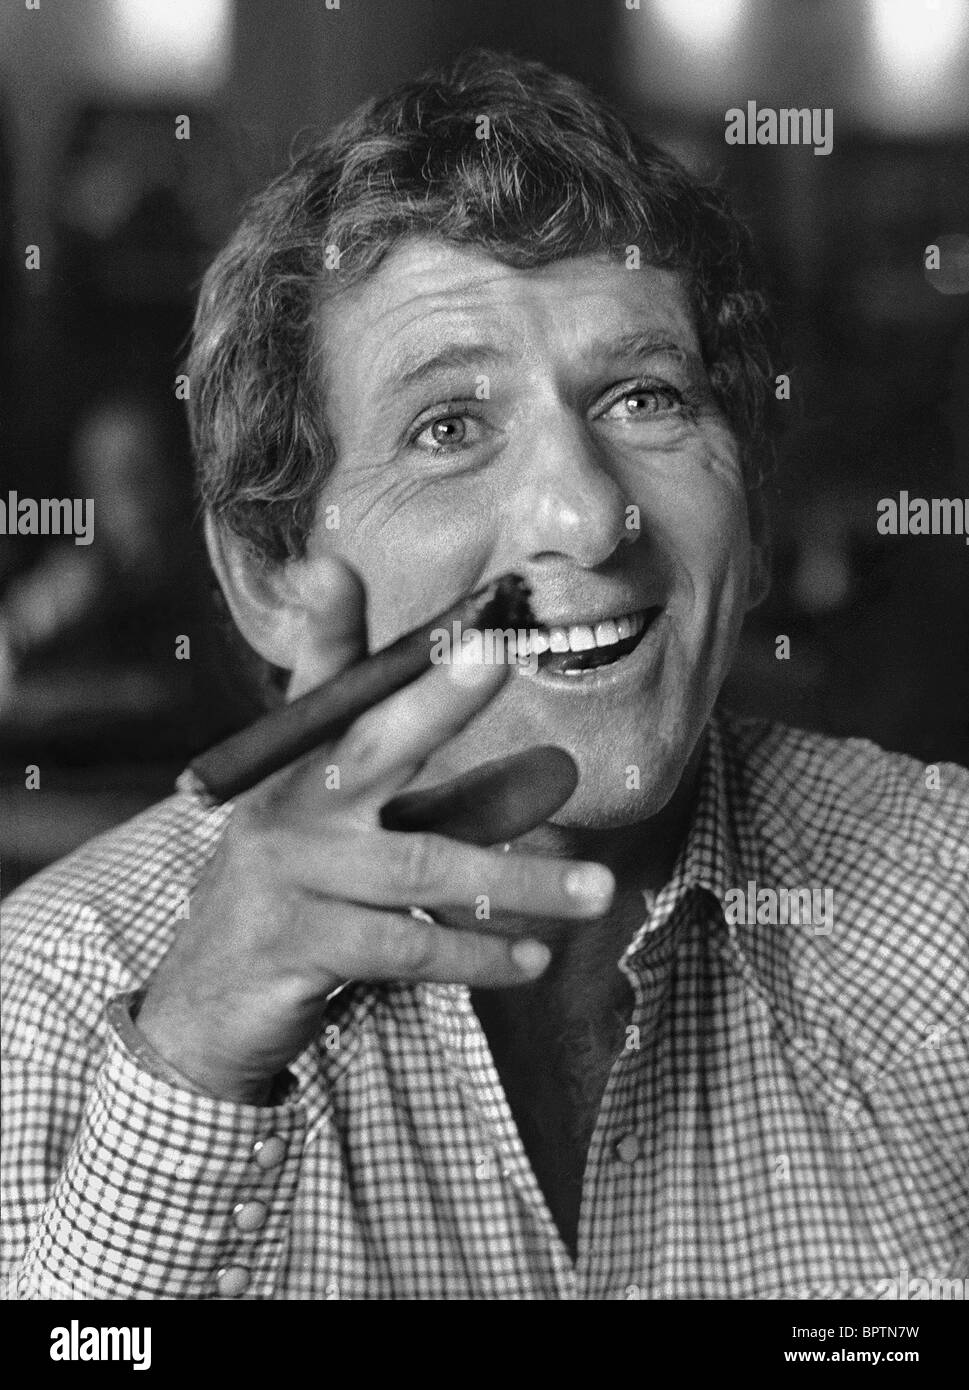 BARRY NEWMAN ACTOR (1975) - Stock Image